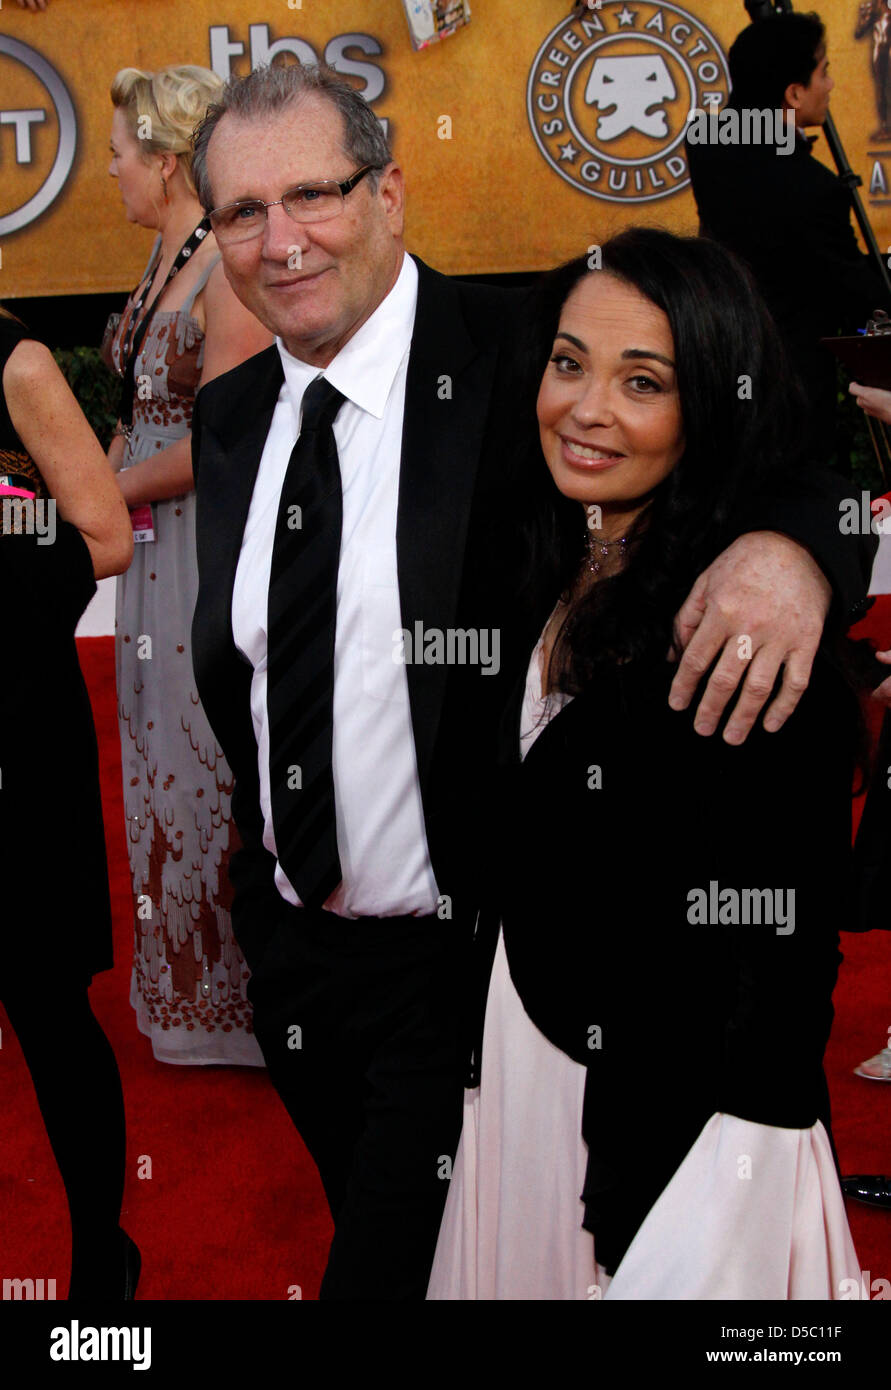 Us Actor Ed O Neill L And Catherine Rusoff R Attend The 16th Stock Photo Alamy Age, young, and height measurements. https www alamy com stock photo us actor ed oneill l and catherine rusoff r attend the 16th annual 54968635 html